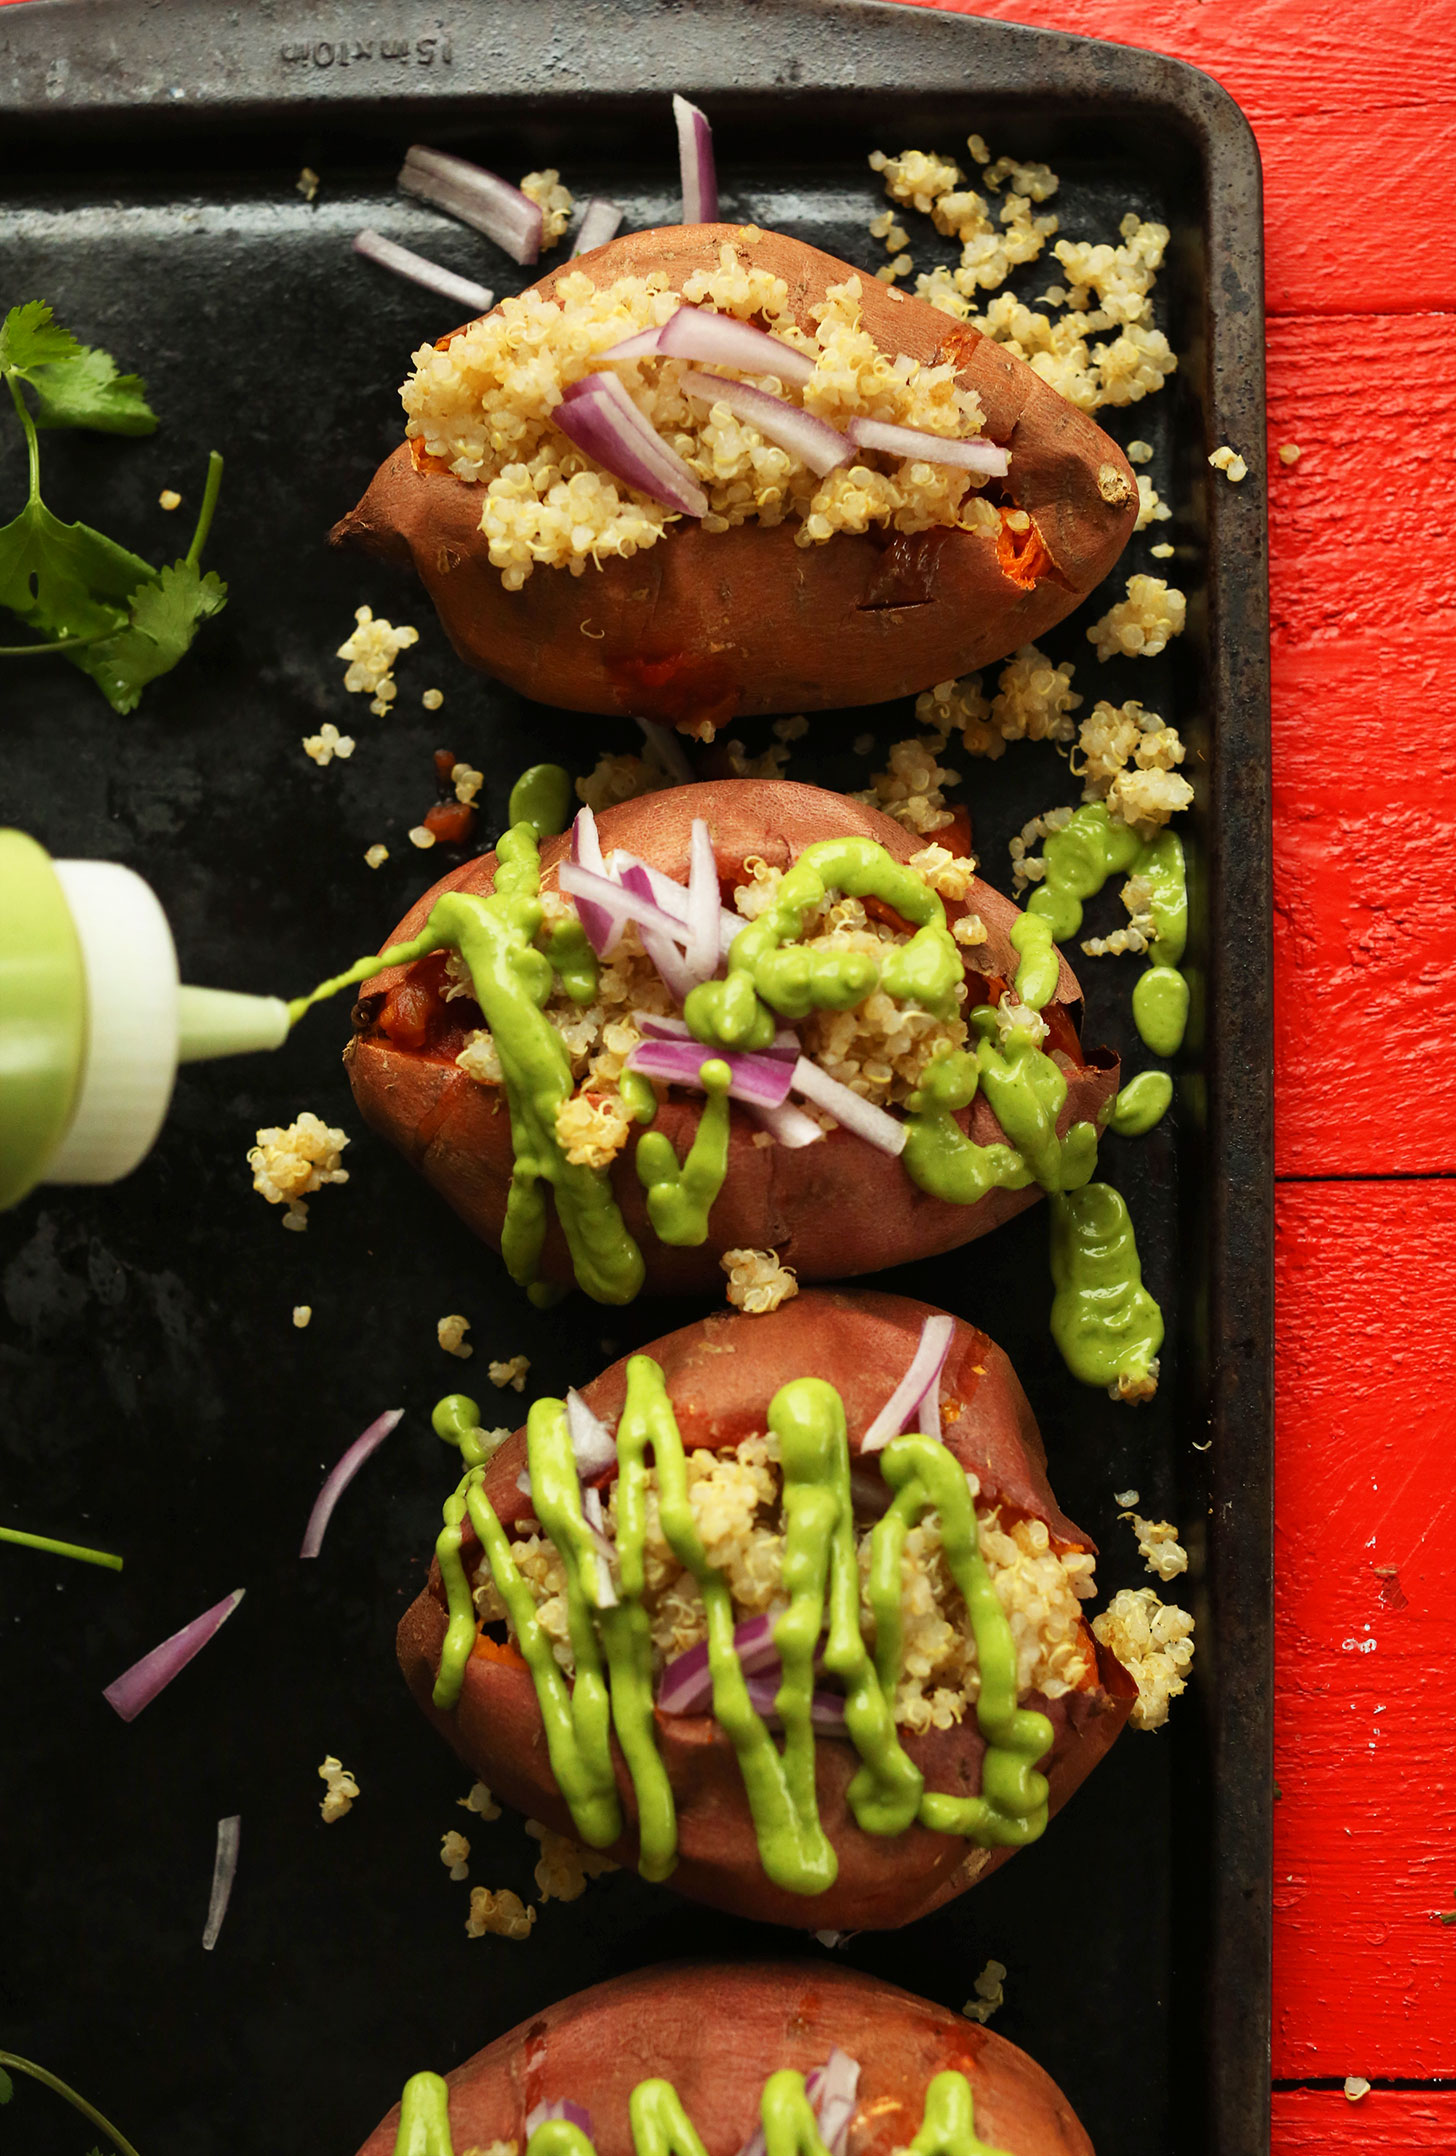 Drizzling avocado cilantro sauce over a tray of Quinoa Stuffed Sweet Potatoes